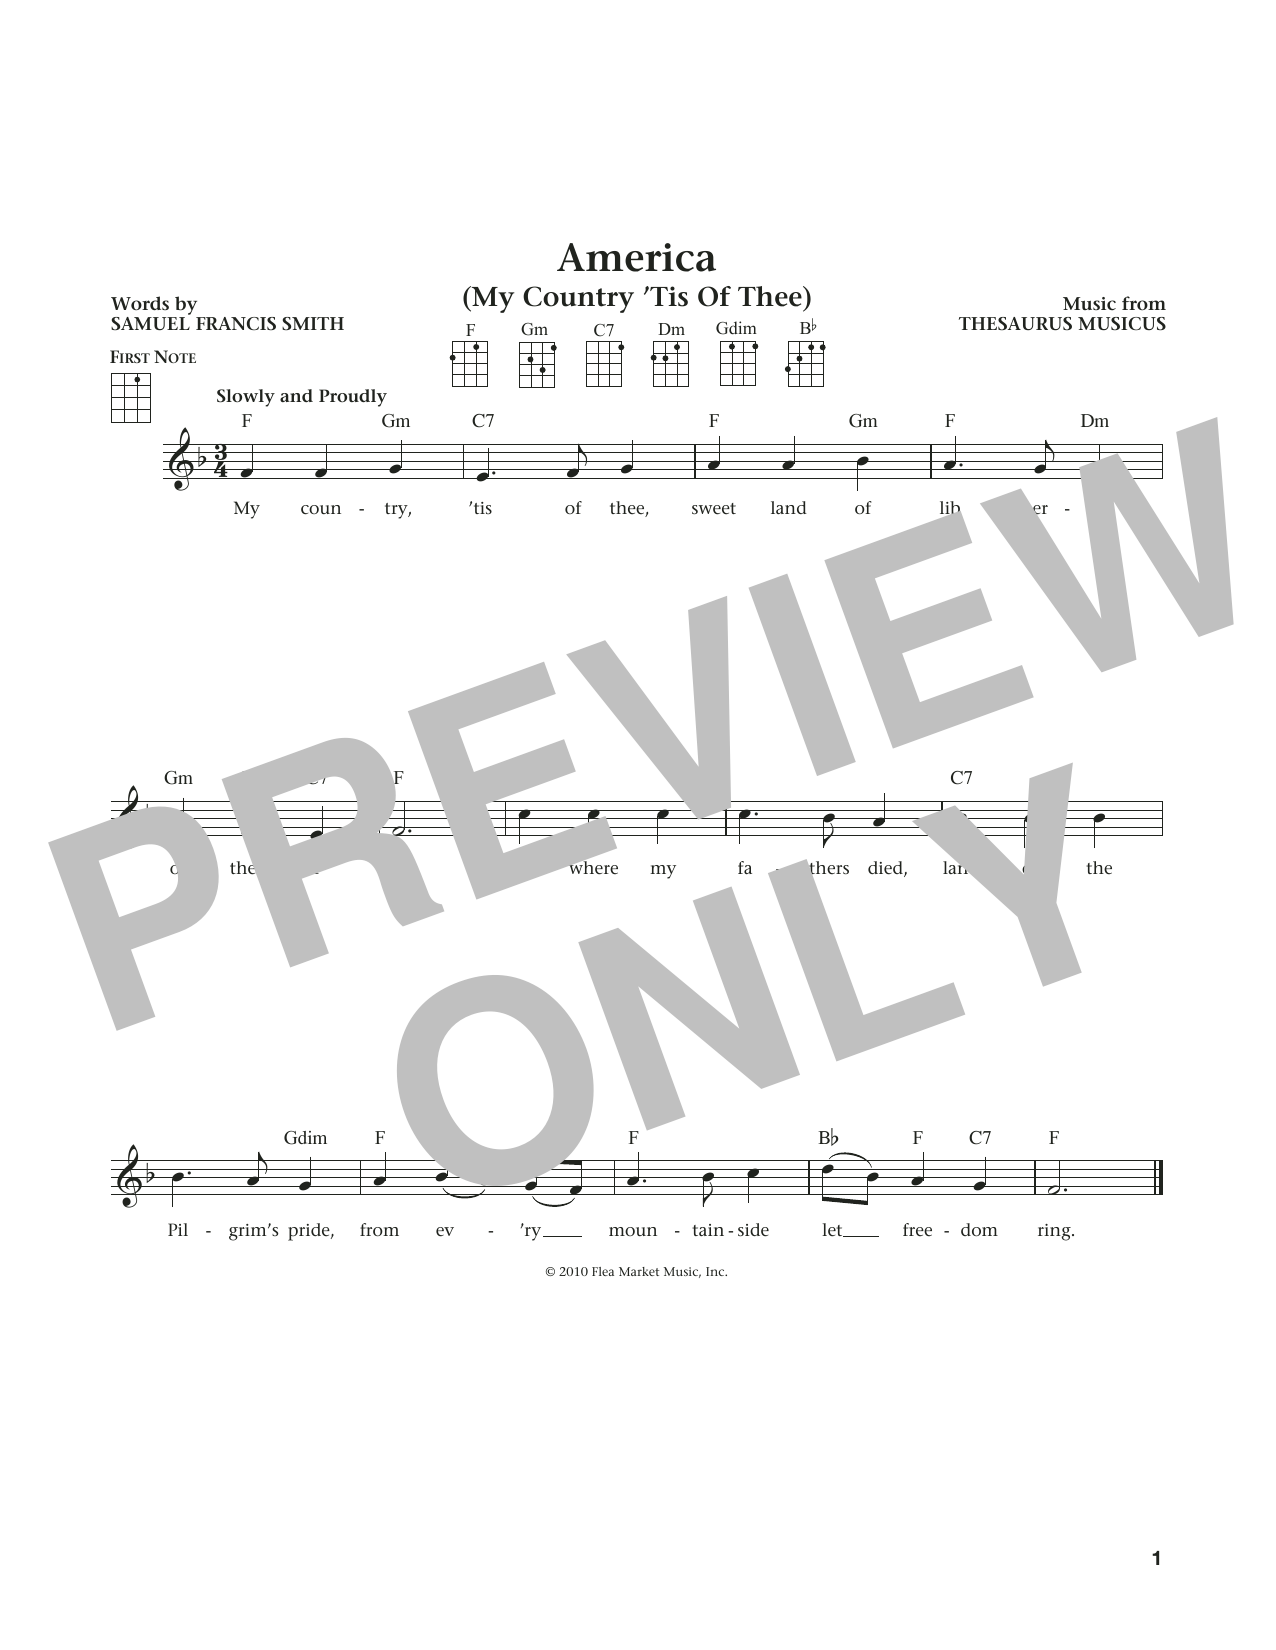 My Country, 'Tis Of Thee (America) (from The Daily Ukulele) (arr. Liz and Jim Beloff) (Ukulele)